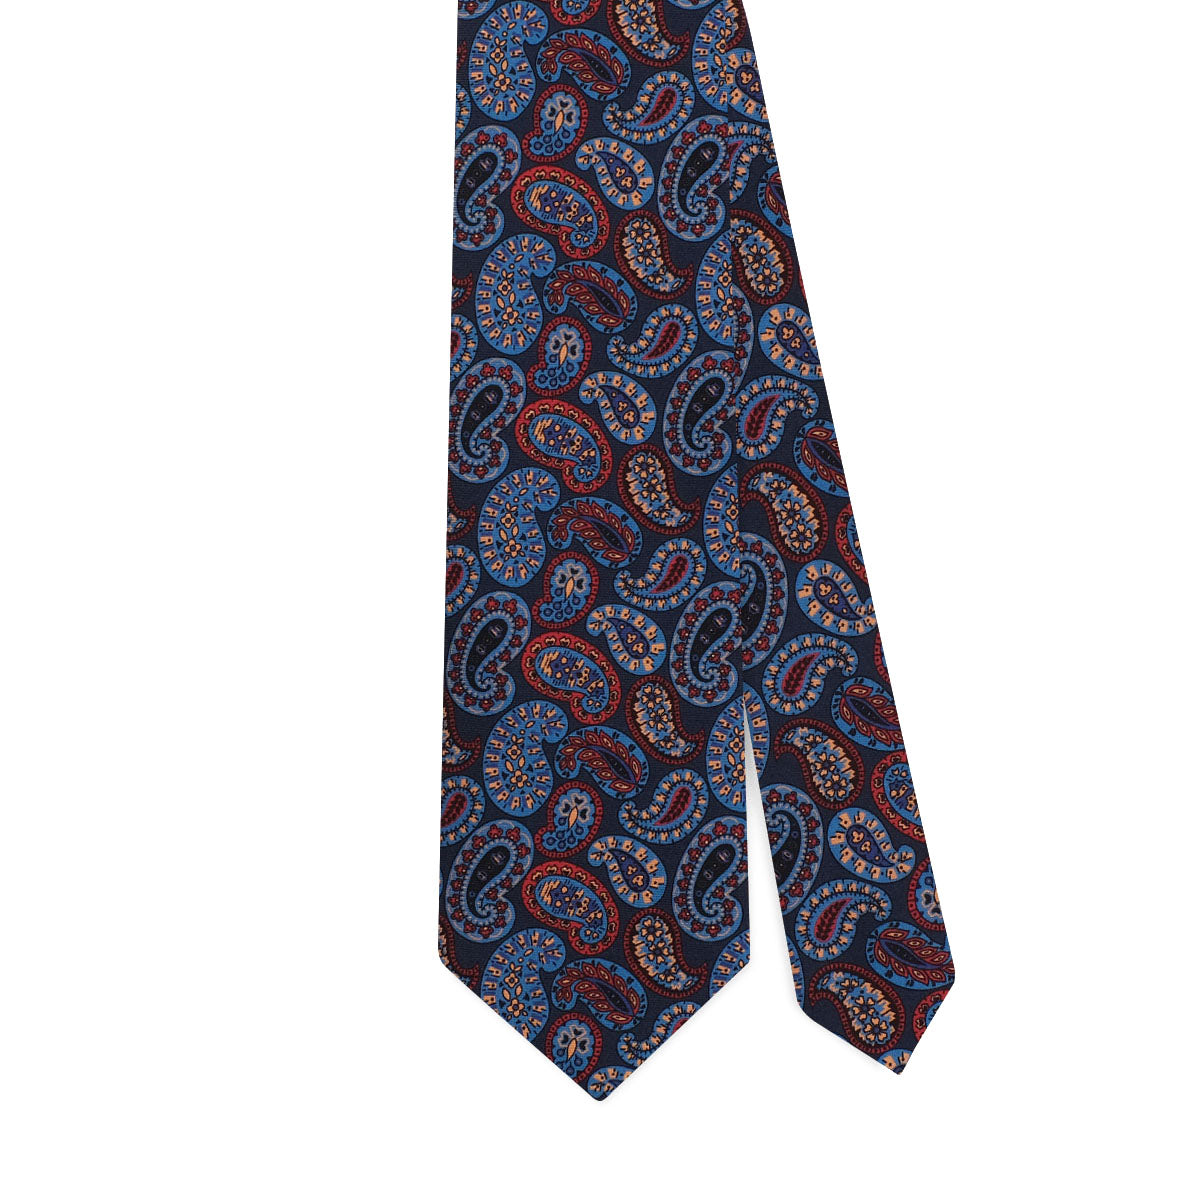 PAISLEY PATTERN HANDPRINTED SILK – BLUE MIX